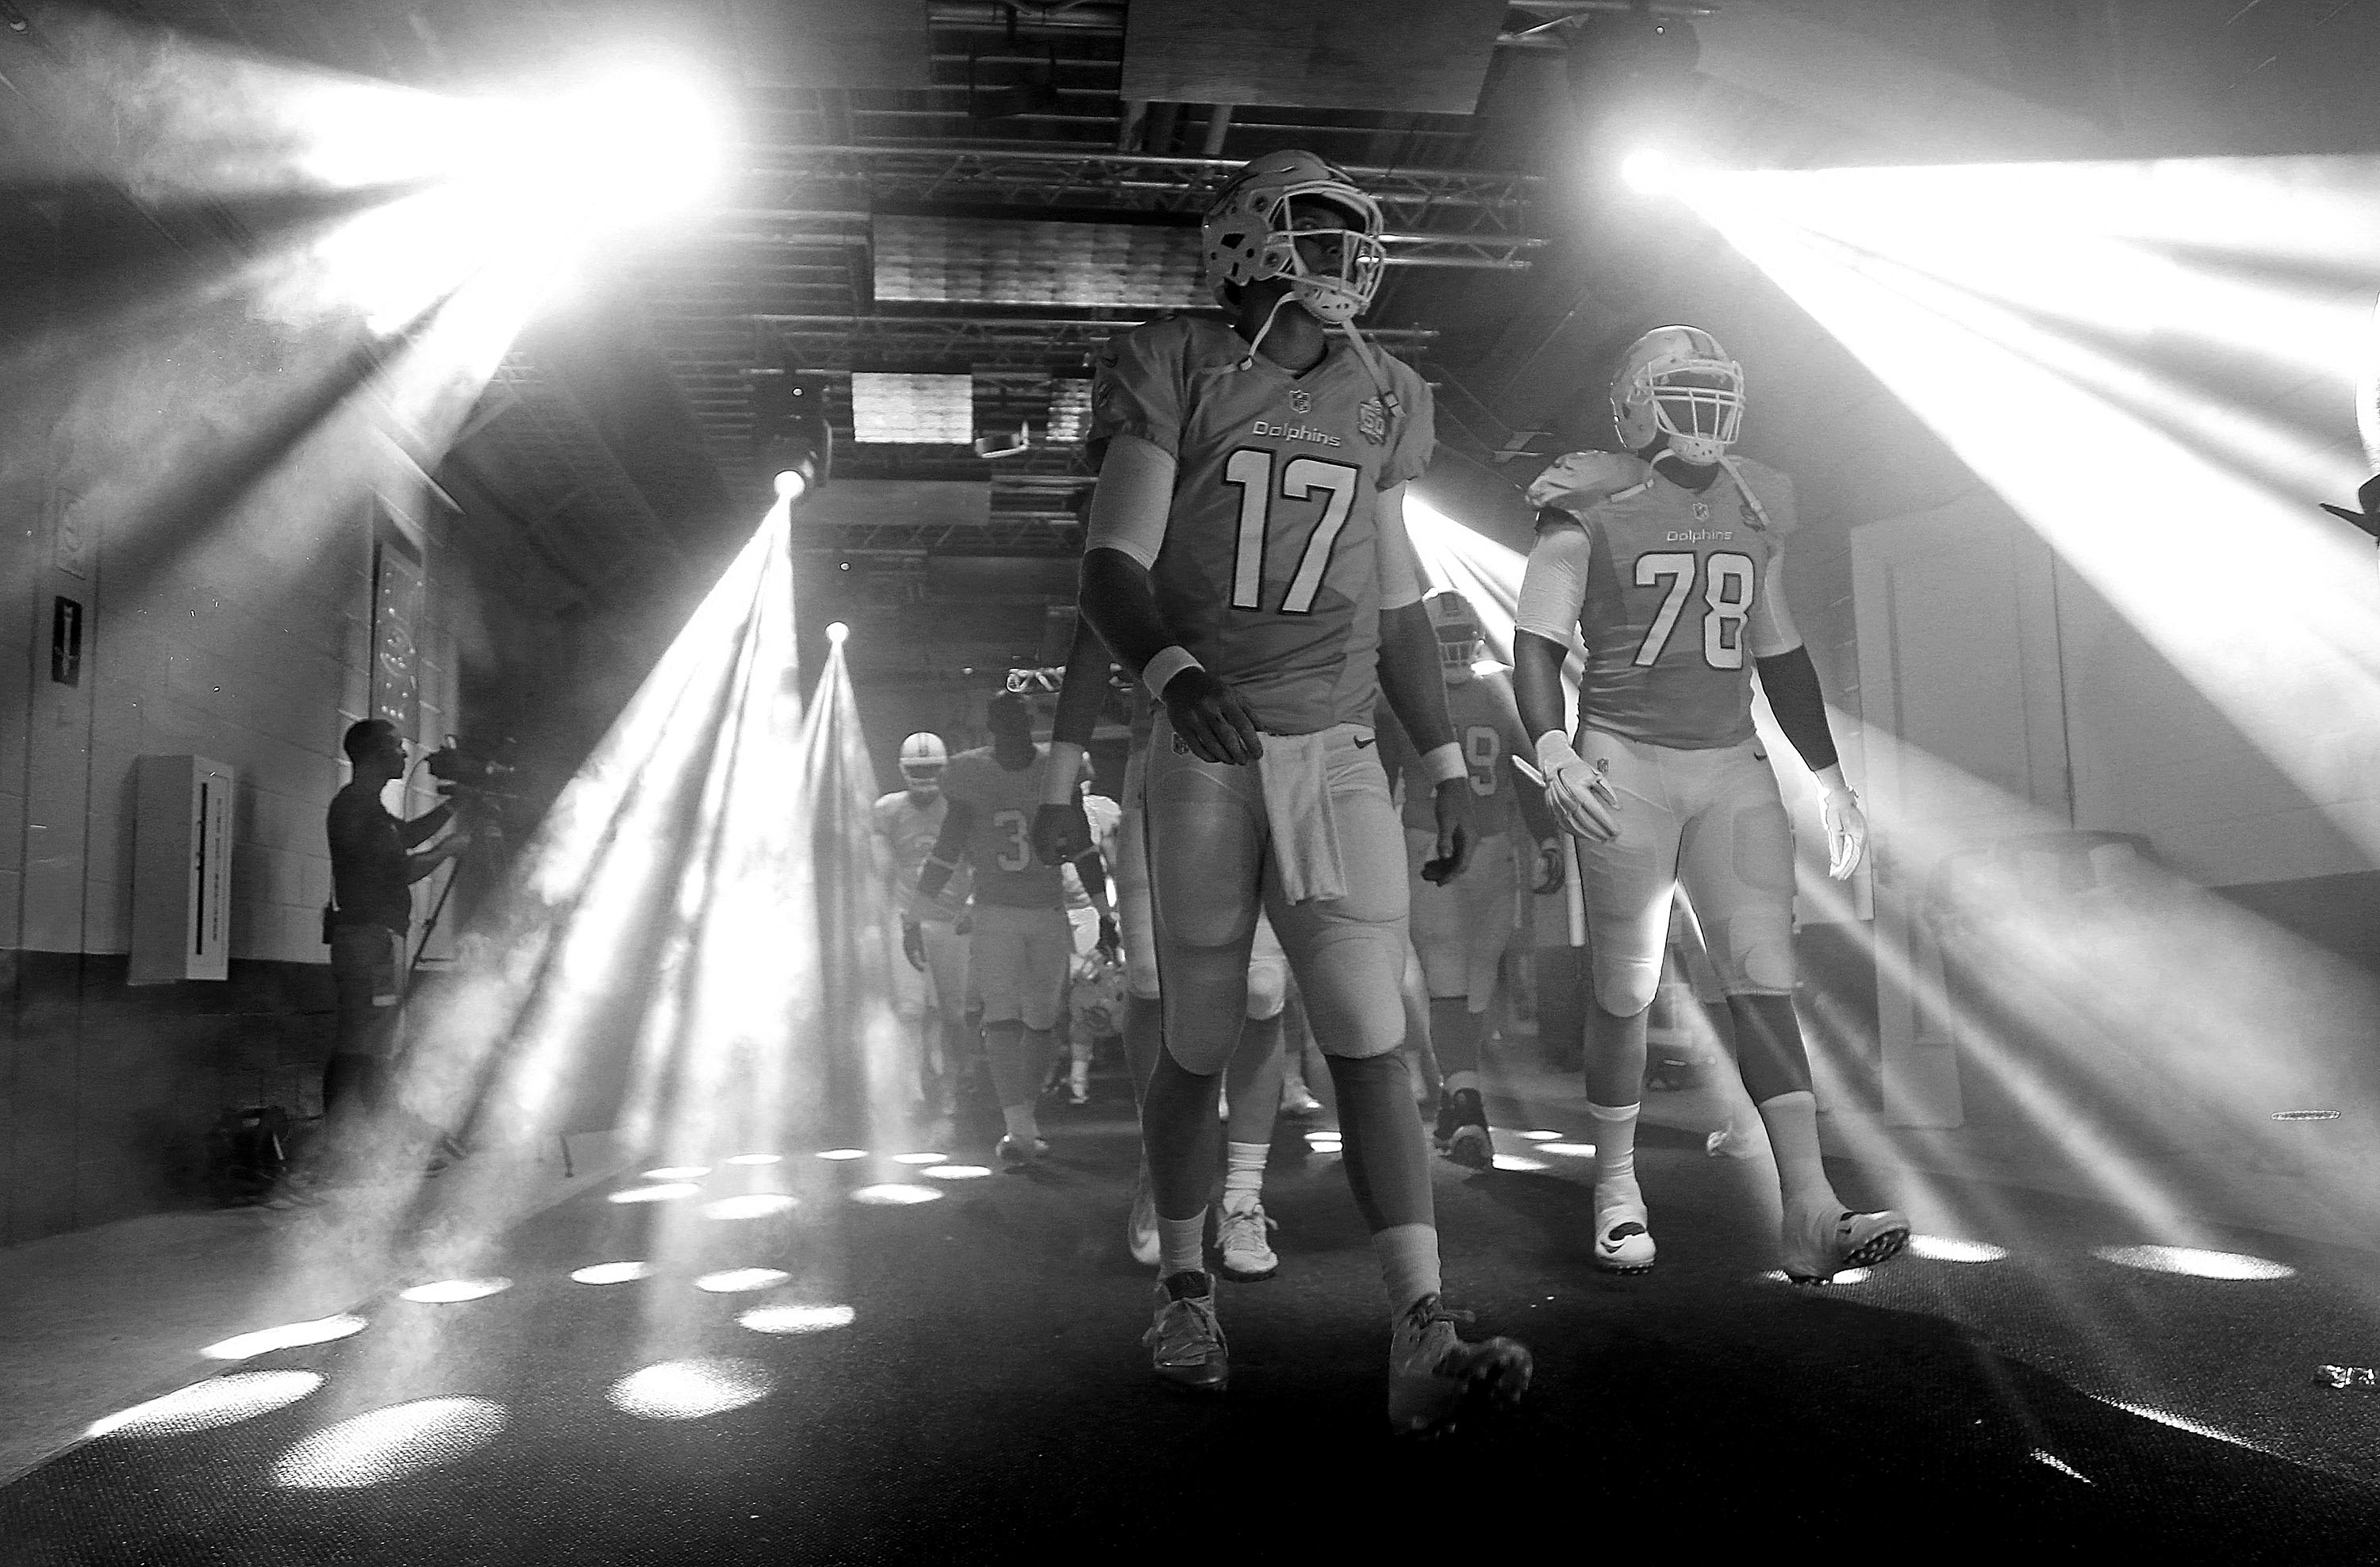 MIAMI GARDENS, FL - AUGUST 29: (EDITORS NOTE: Image has been converted to black and white.) Ryan Tannehill #17 of the Miami Dolphins takes the field during a preseason game against the Atlanta Falcons at Sun Life Stadium on August 29, 2015 in Miami Gardens, Florida.  (Photo by Mike Ehrmann/Getty Images)